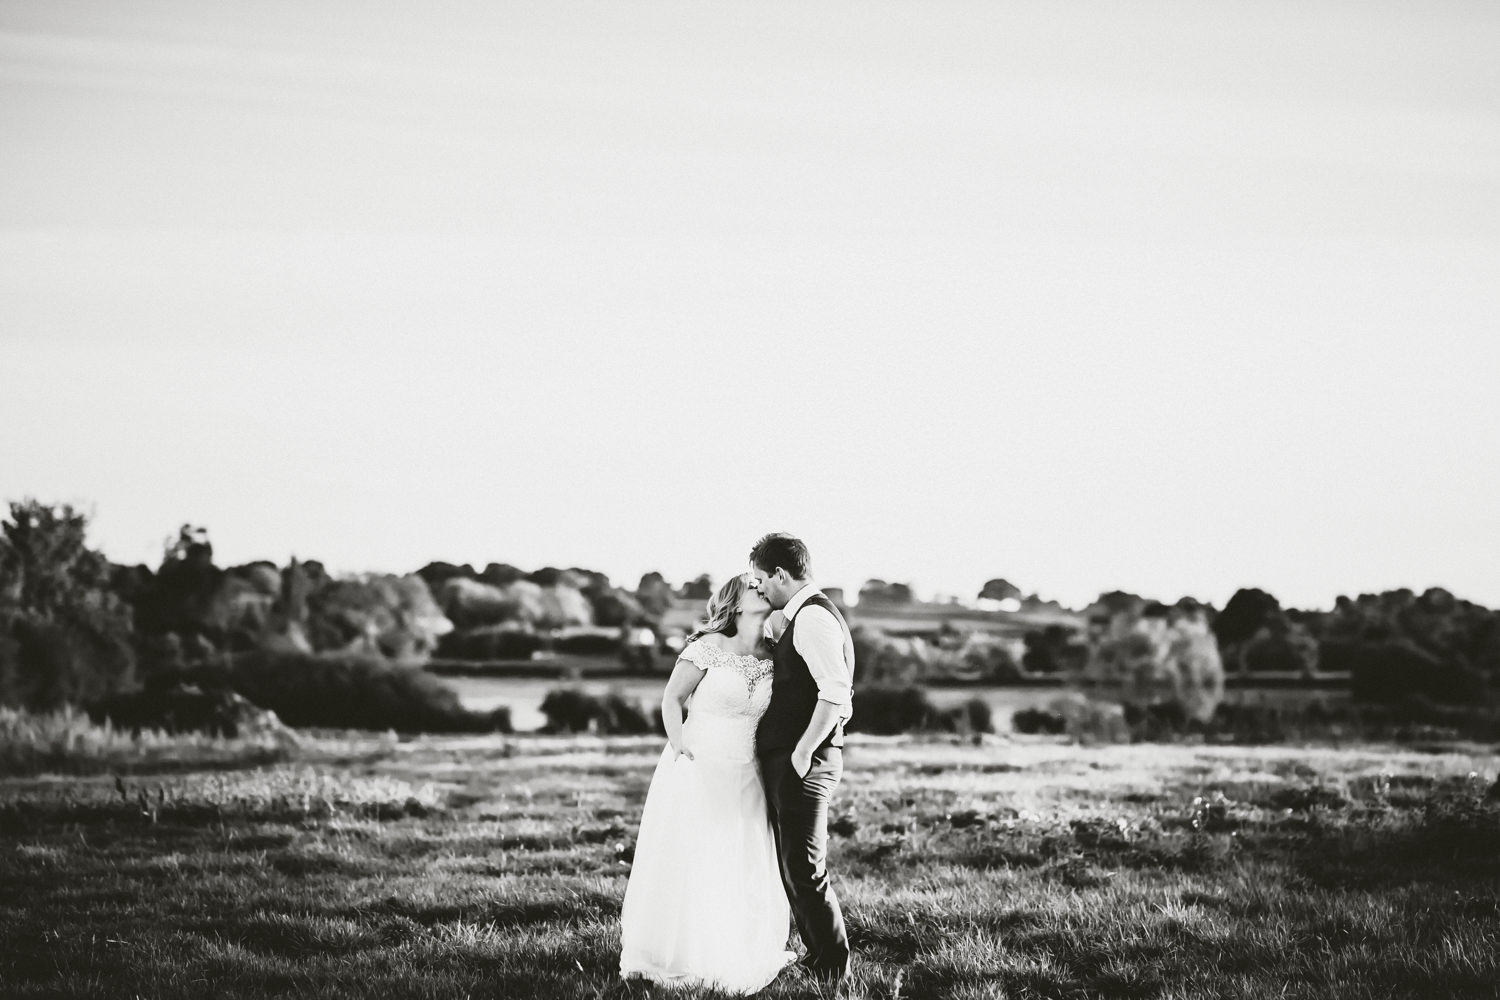 E&B | Winkworth Farm Wedding Photography-652.JPG